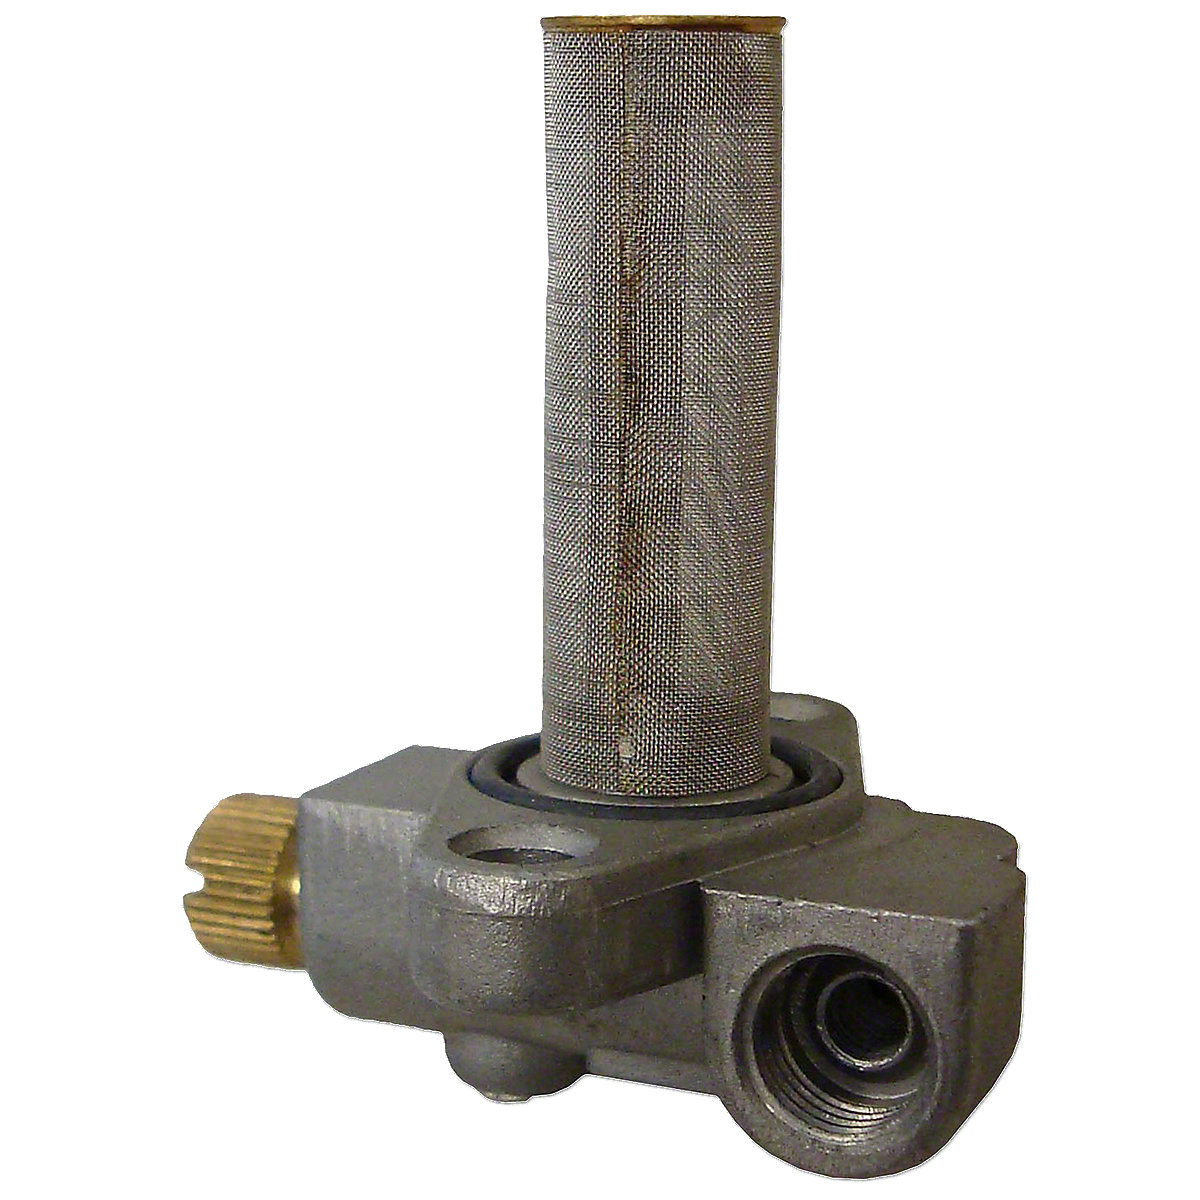 ABC127 Fuel Shut Off Valve